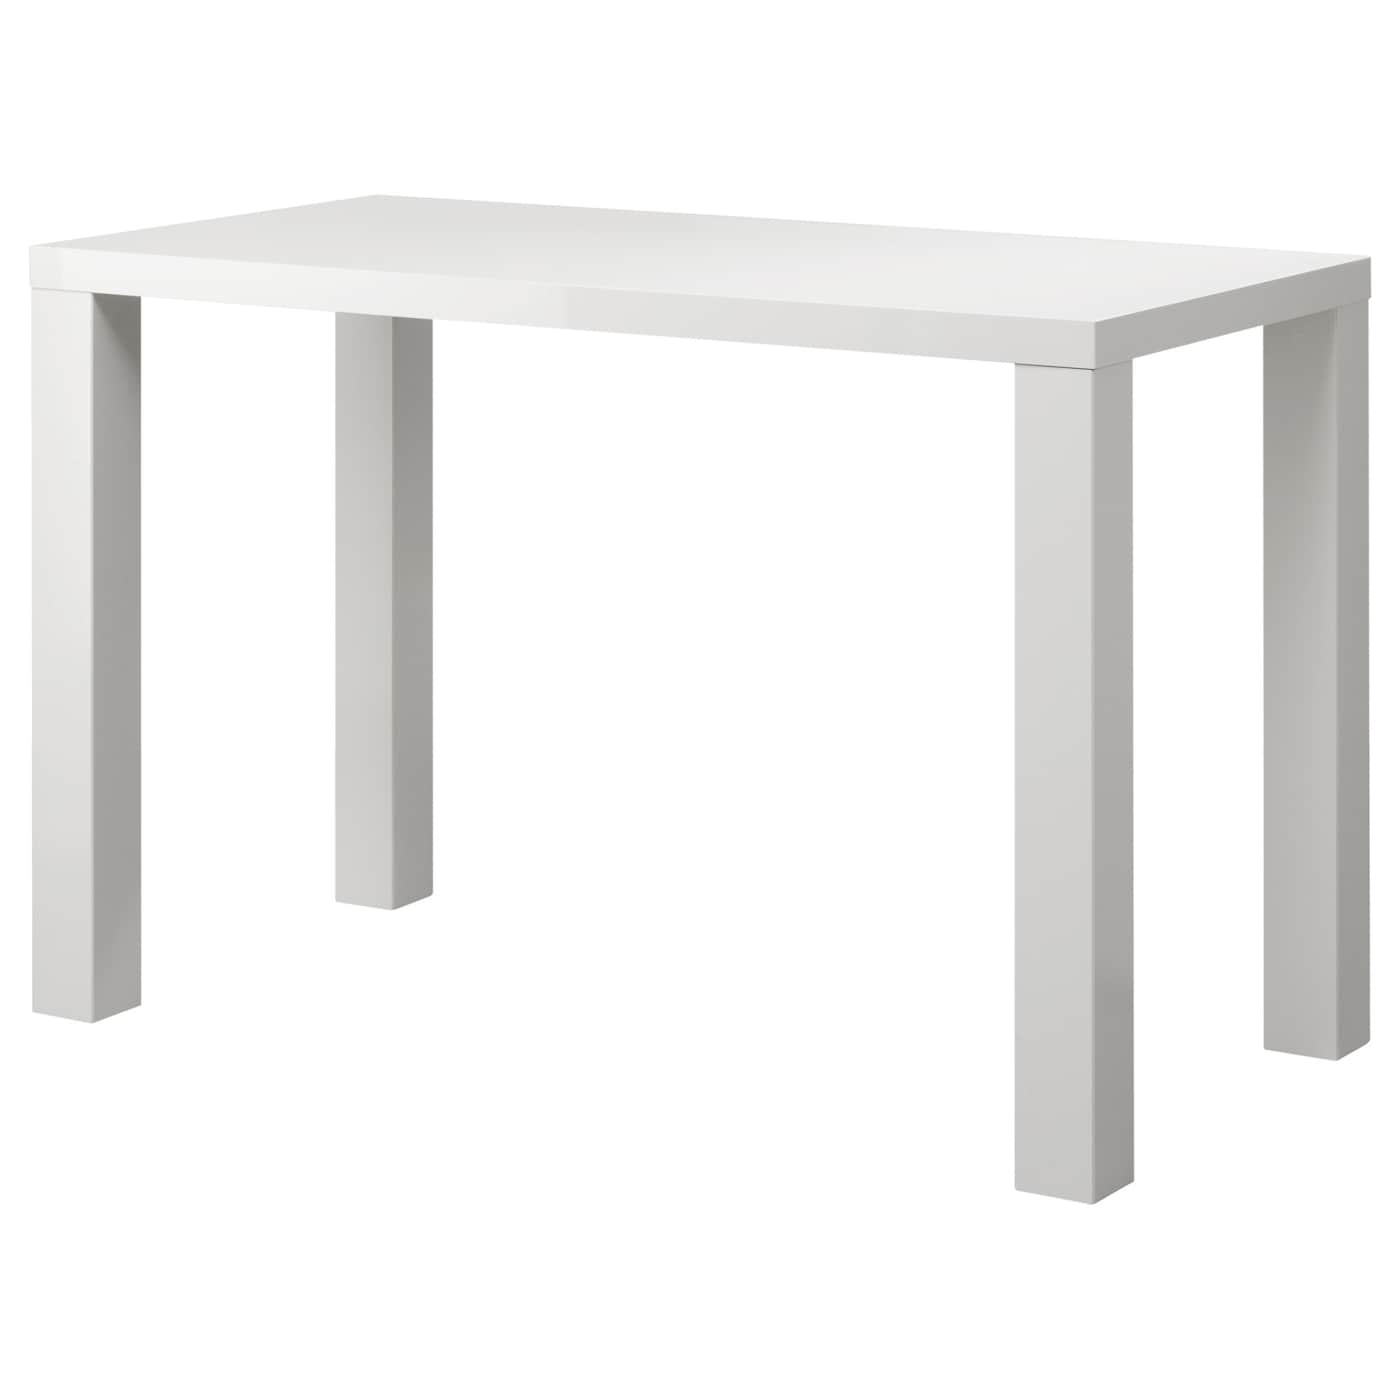 toresund bar table white high gloss 70 x 140 cm ikea. Black Bedroom Furniture Sets. Home Design Ideas